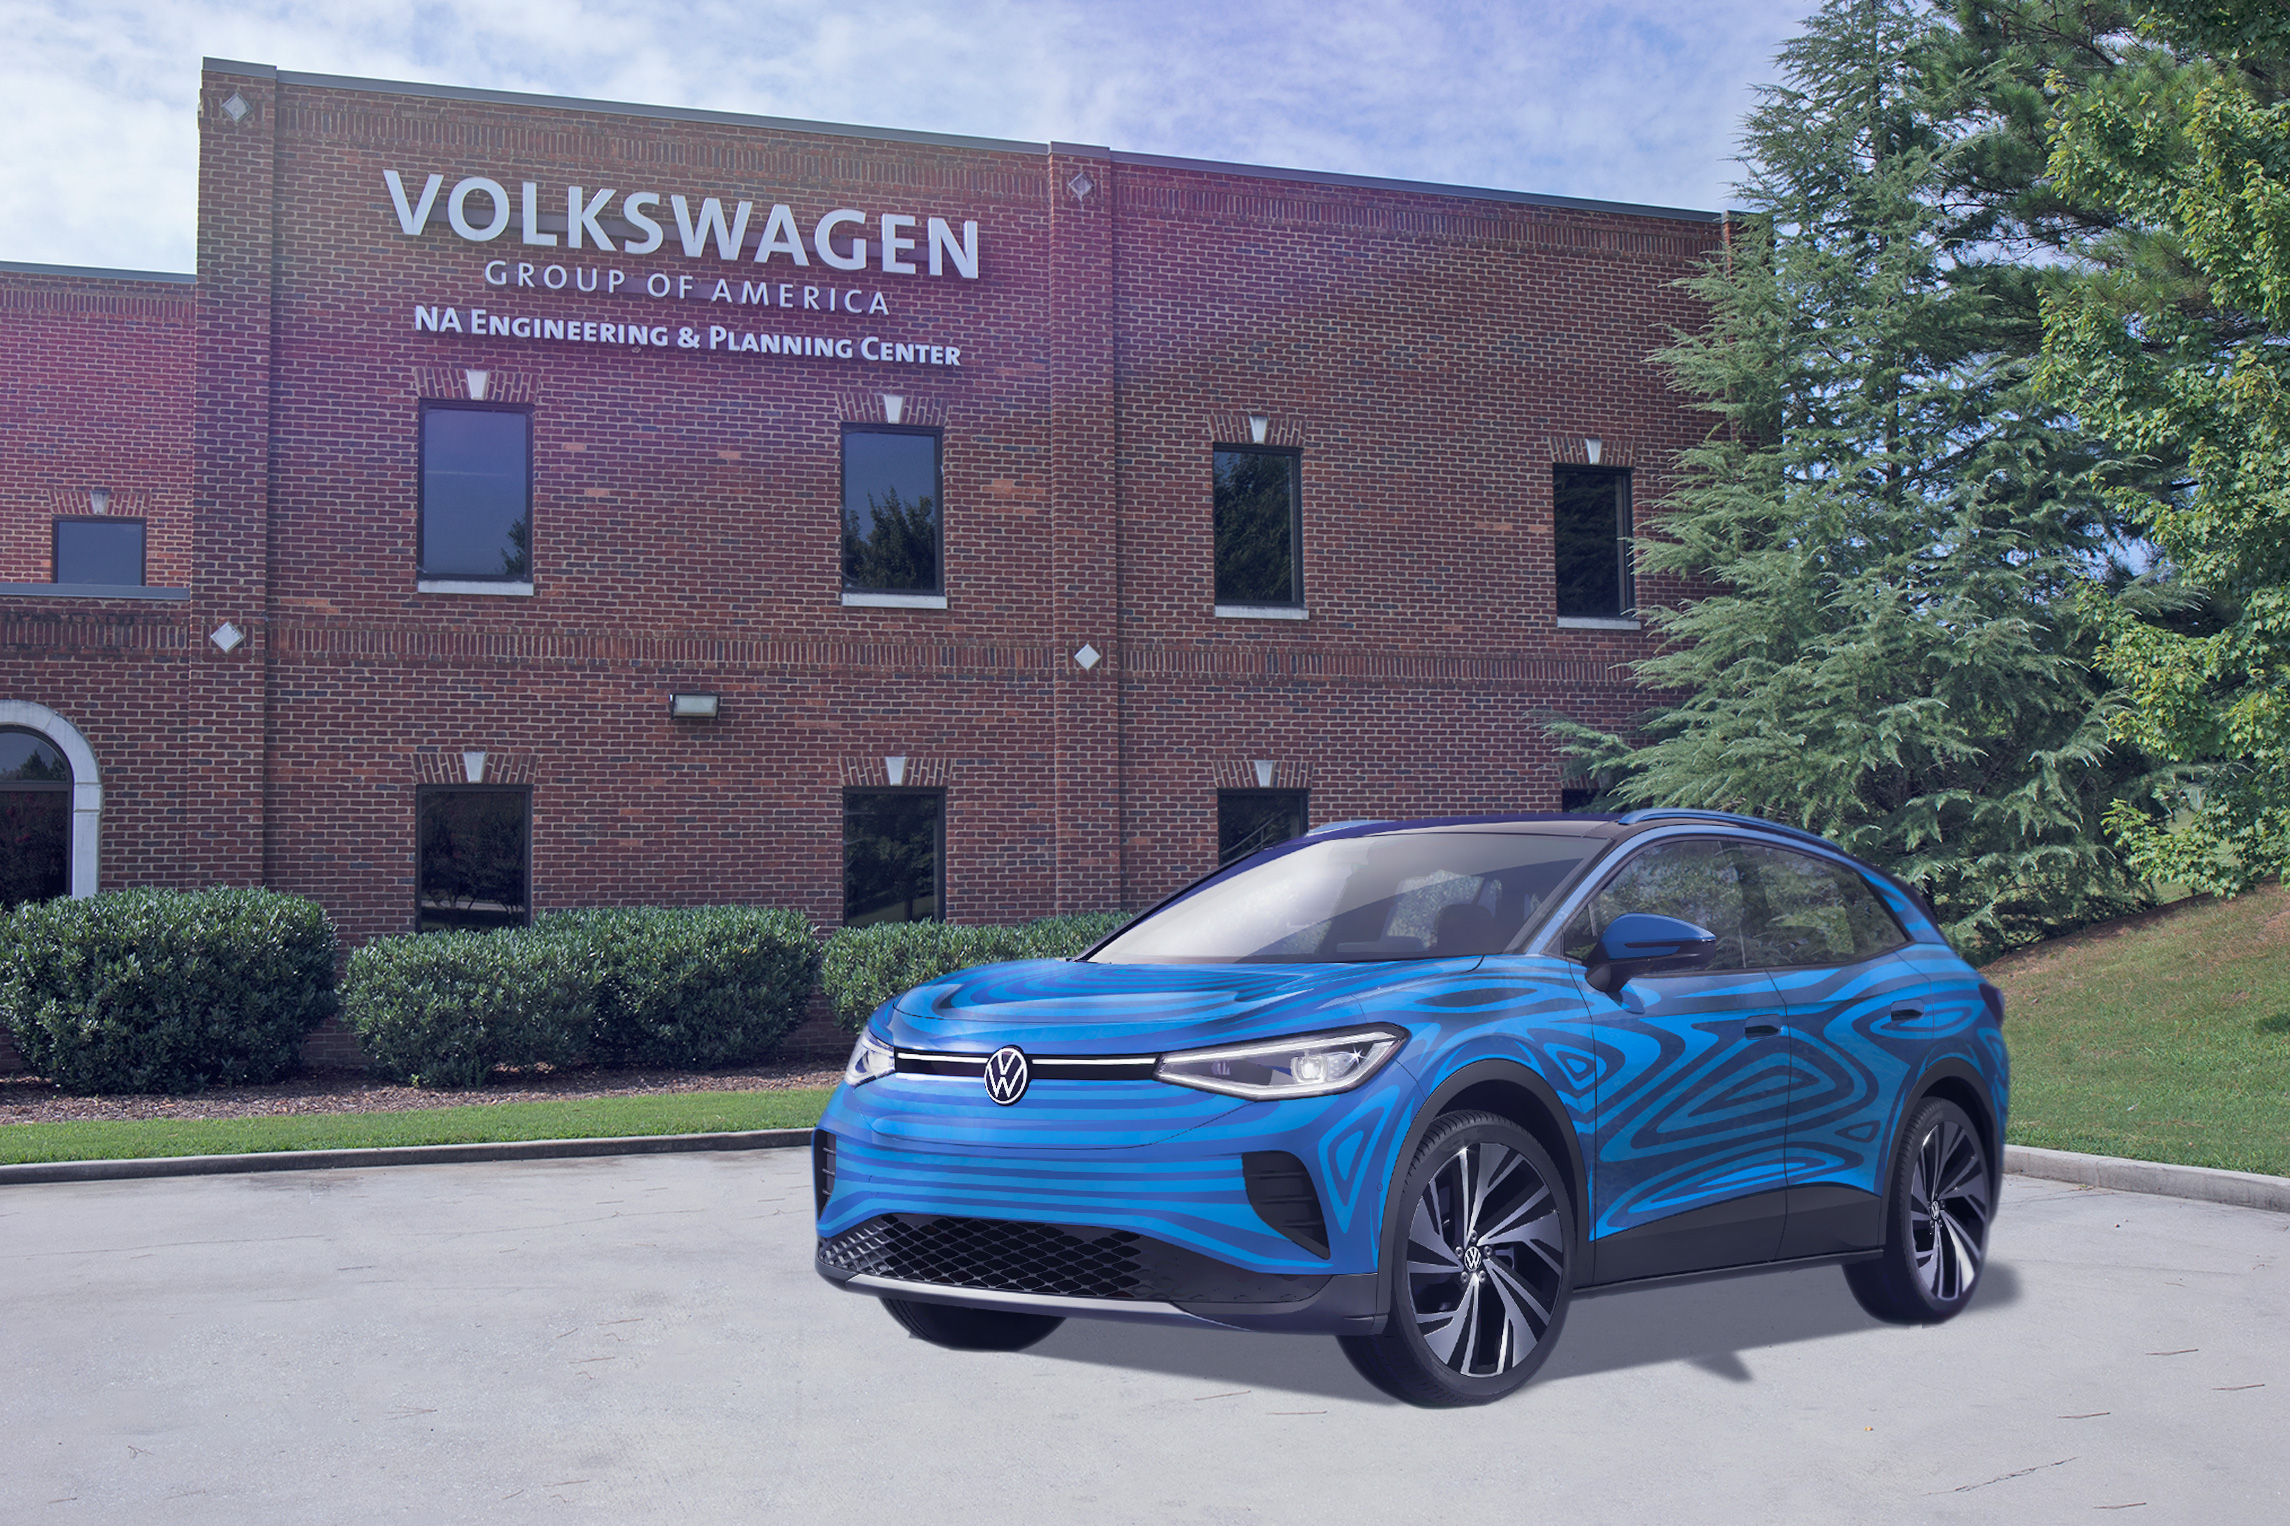 volkswagen-engineering-and-planning-center